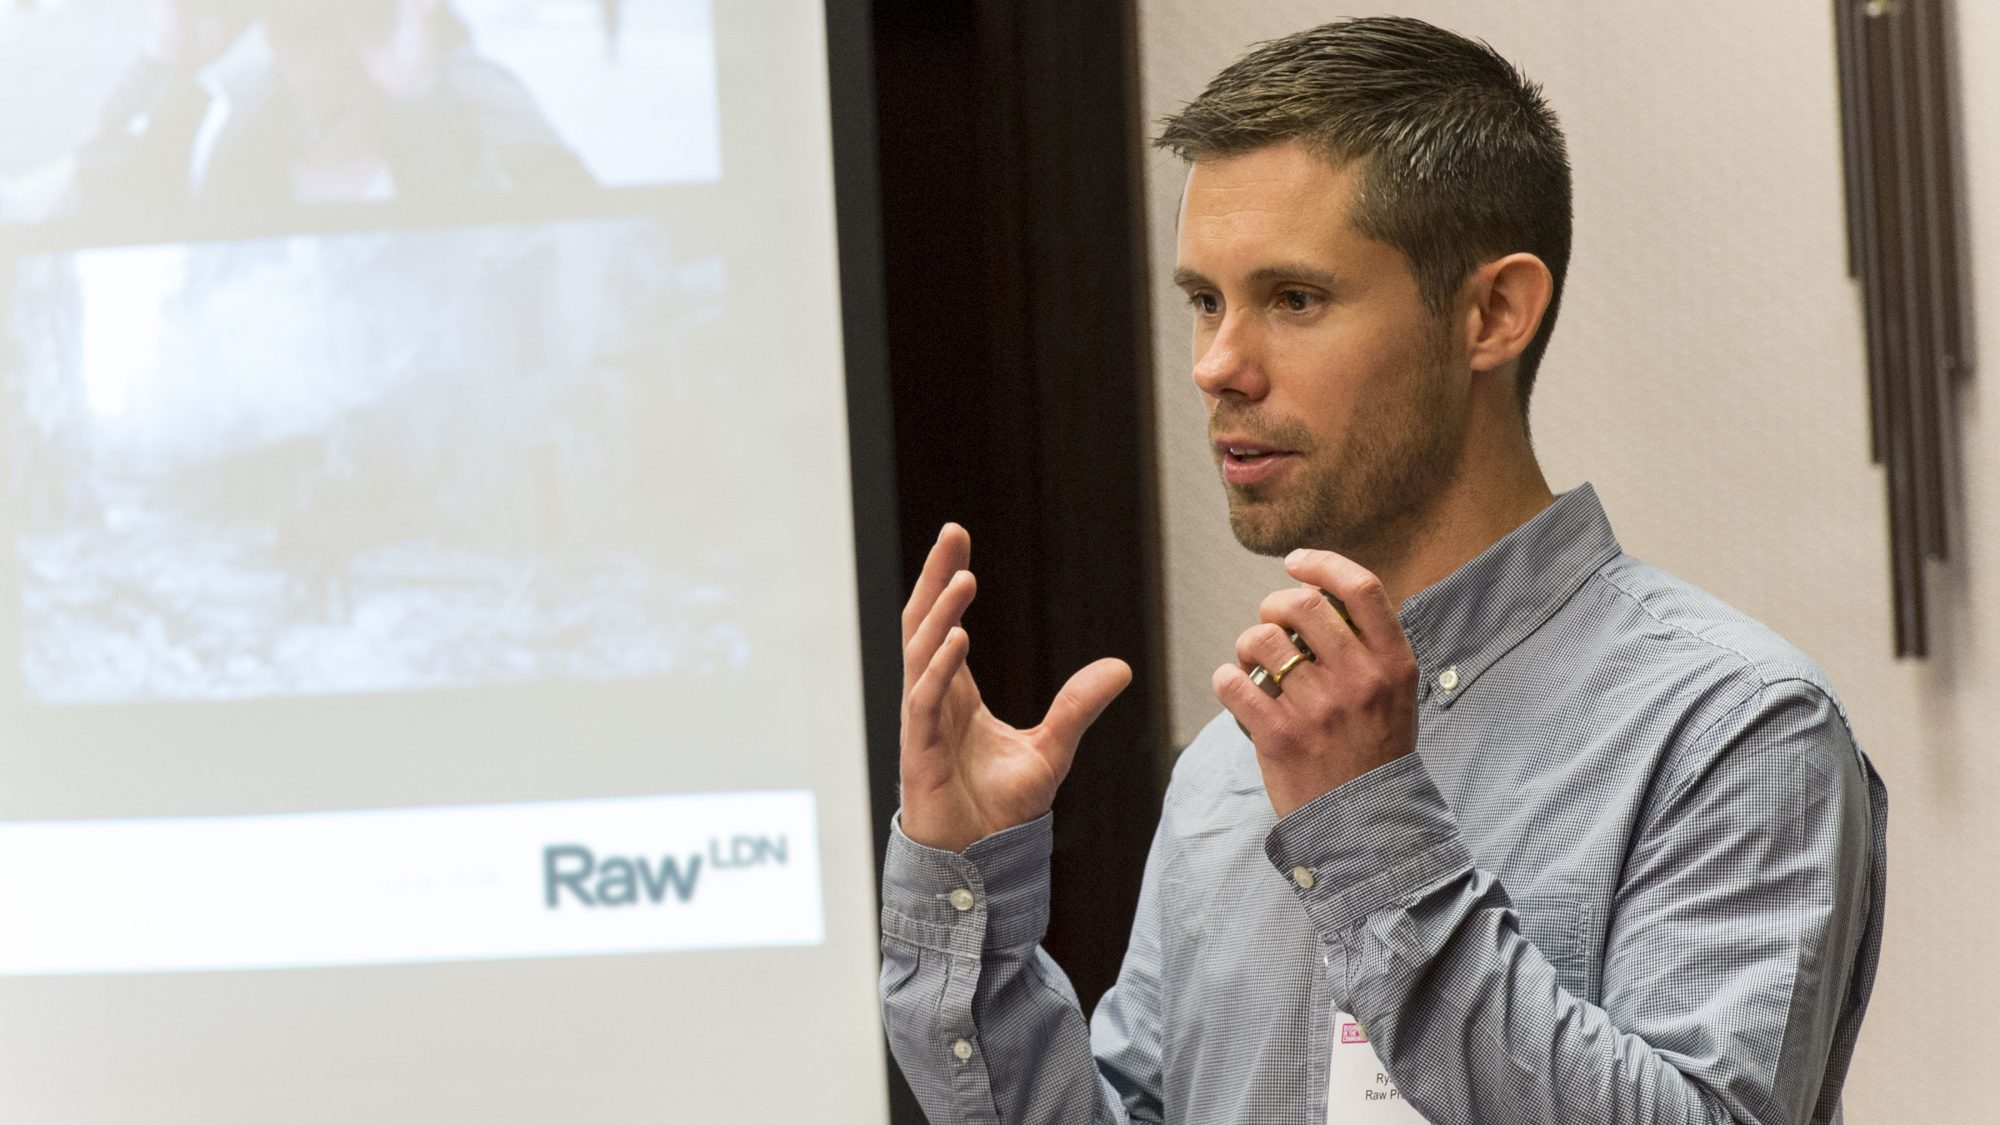 Ryan Wilkins sharing insight at Relay by Raw London charity event